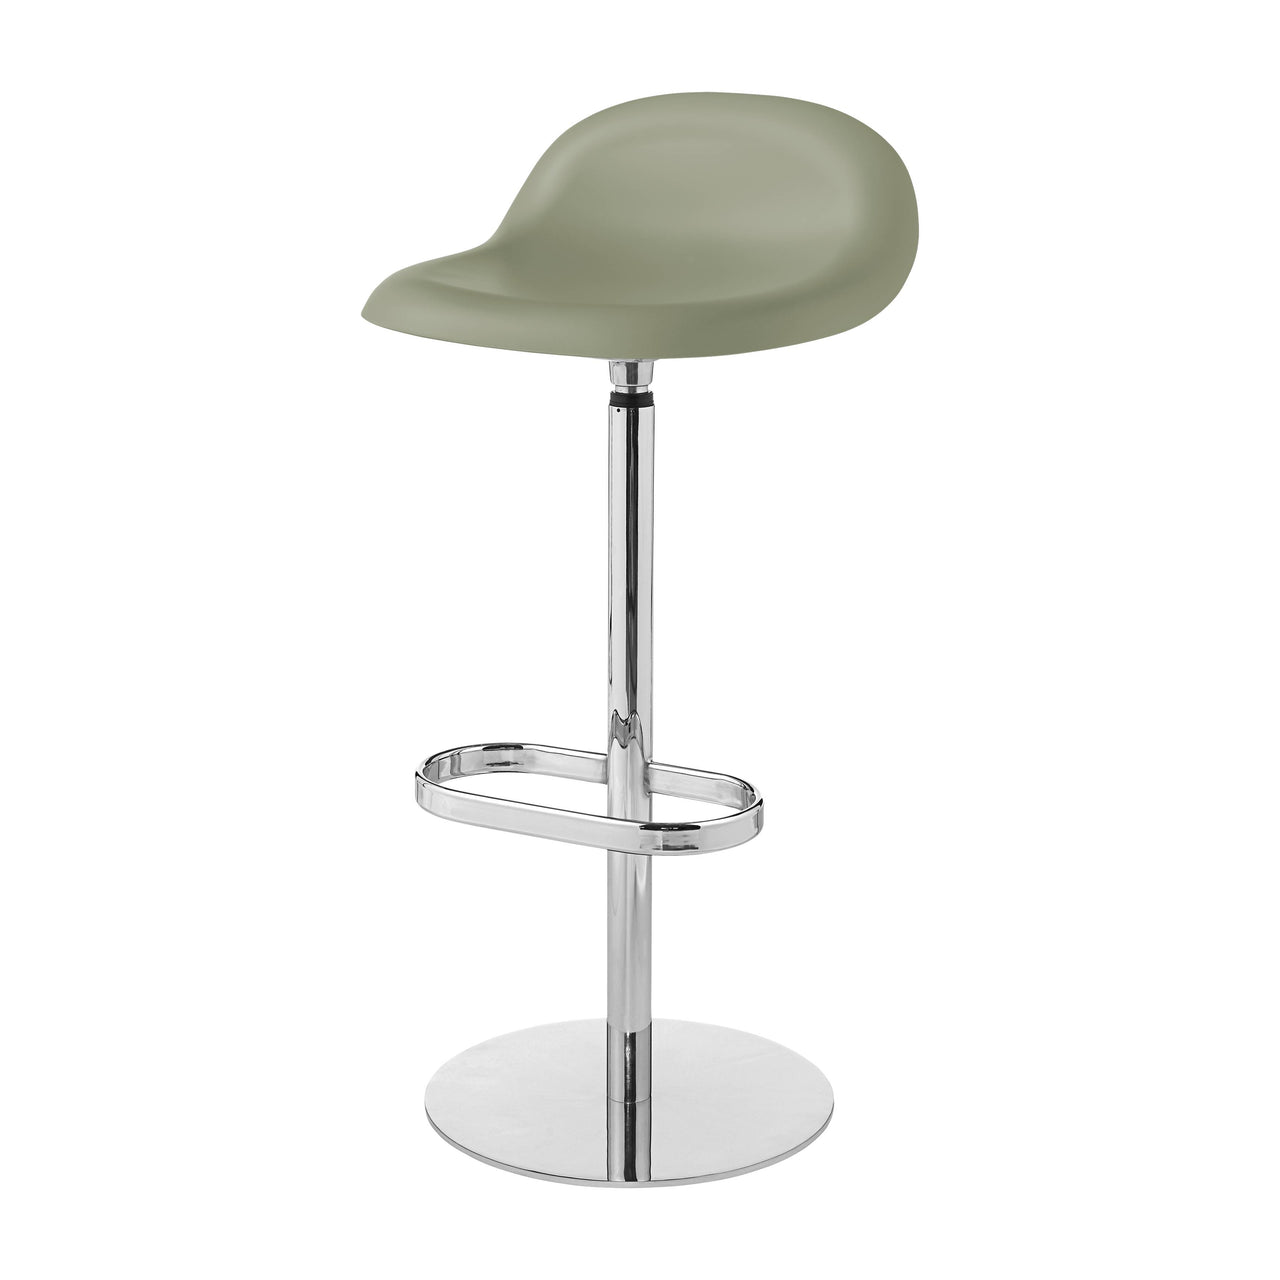 3D Bar Stool: Swivel Base + Mistletoe Green